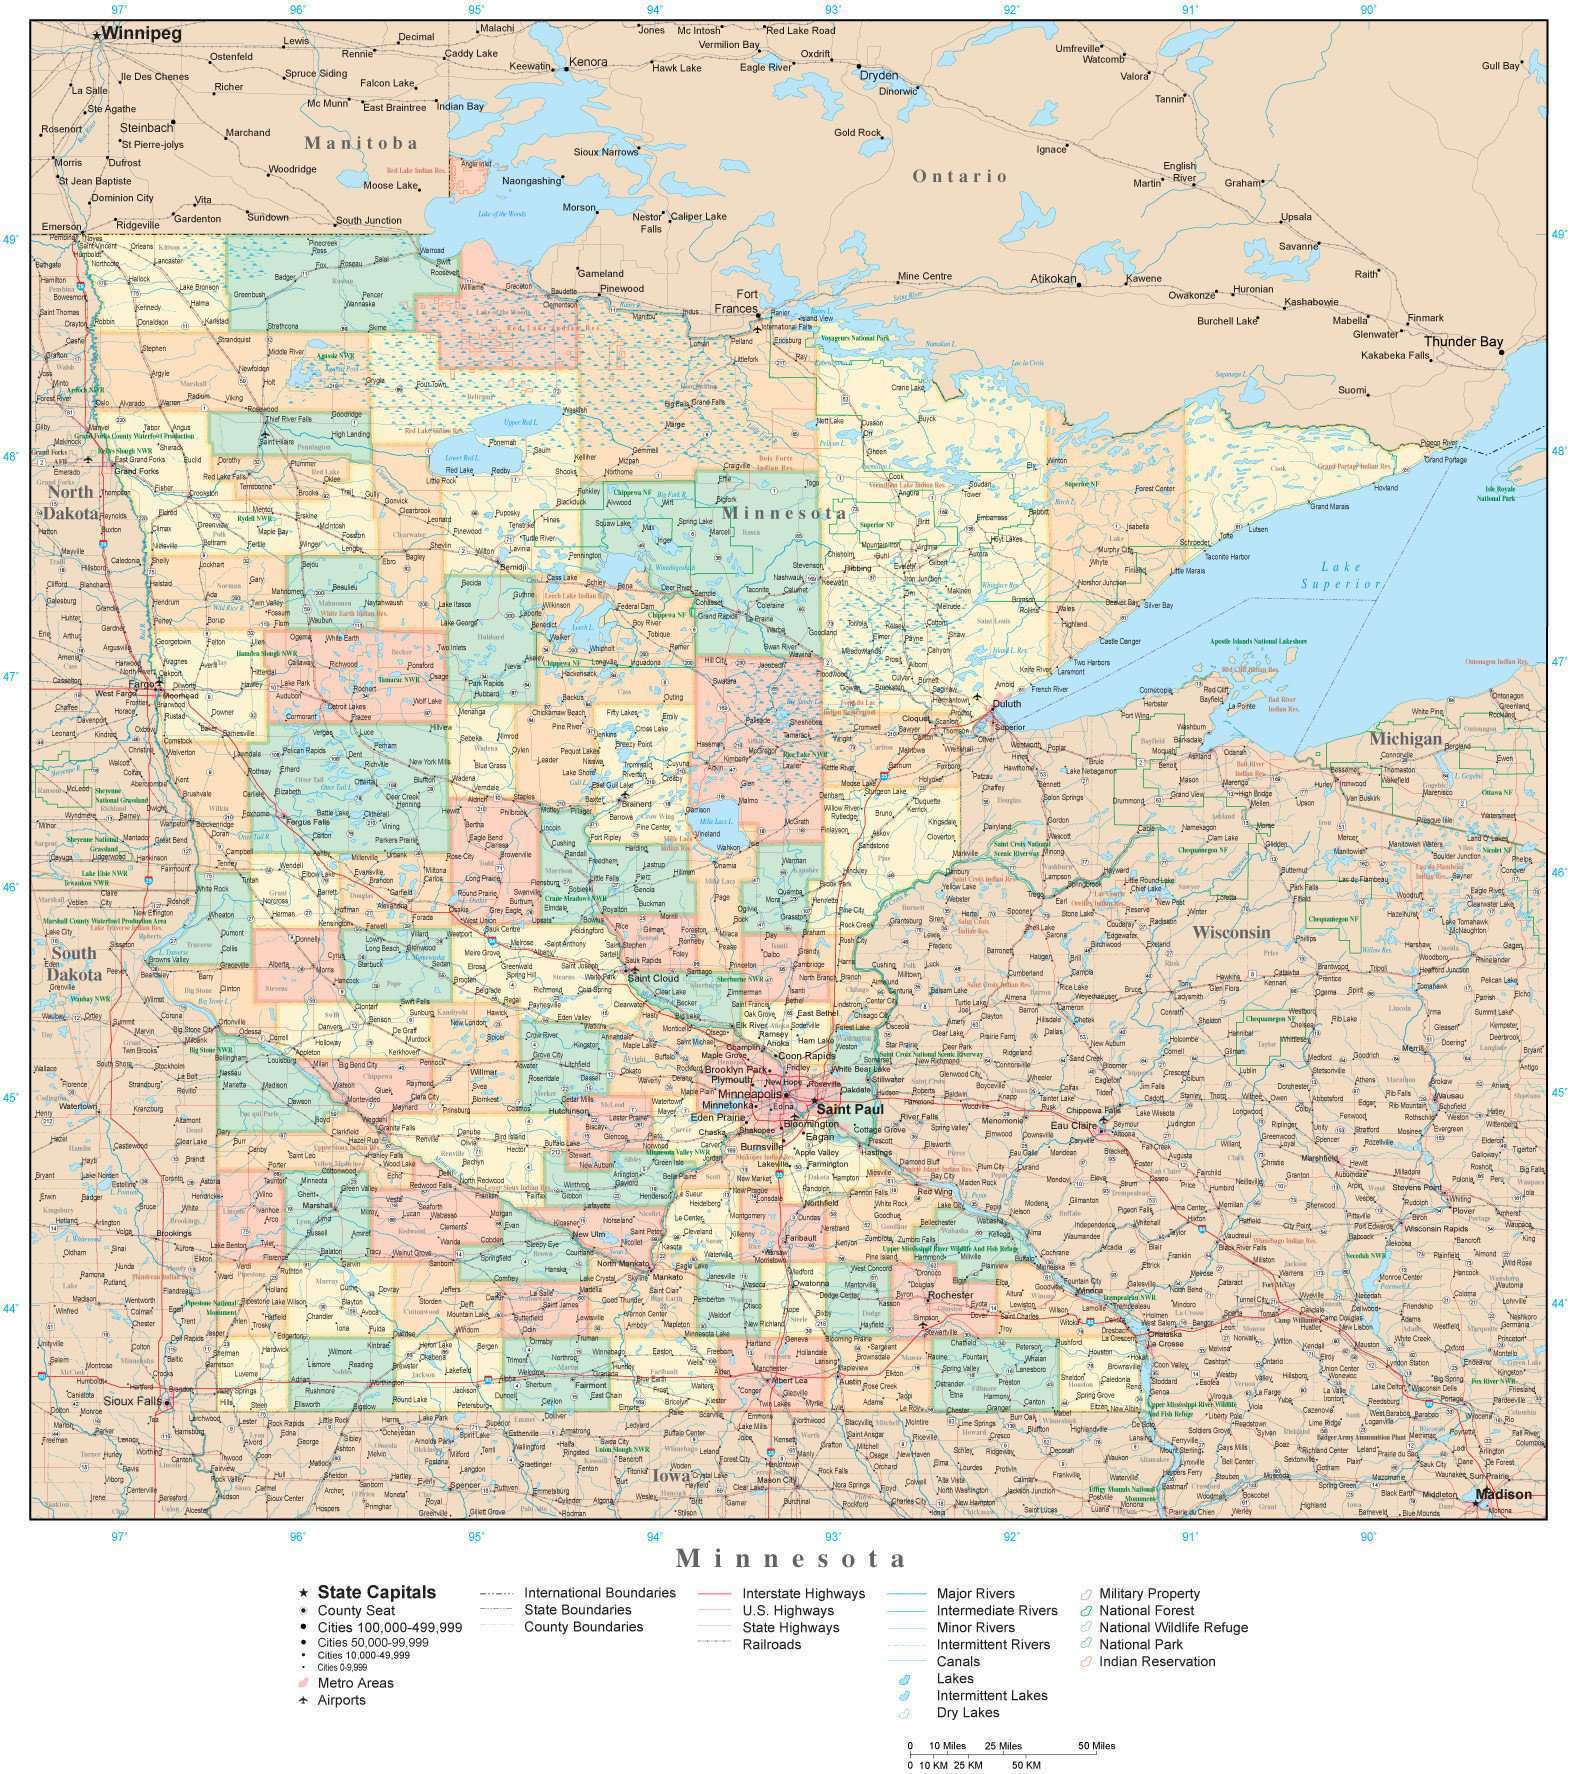 Minnesota State Map in Adobe Illustrator Vector Format. Detailed ...